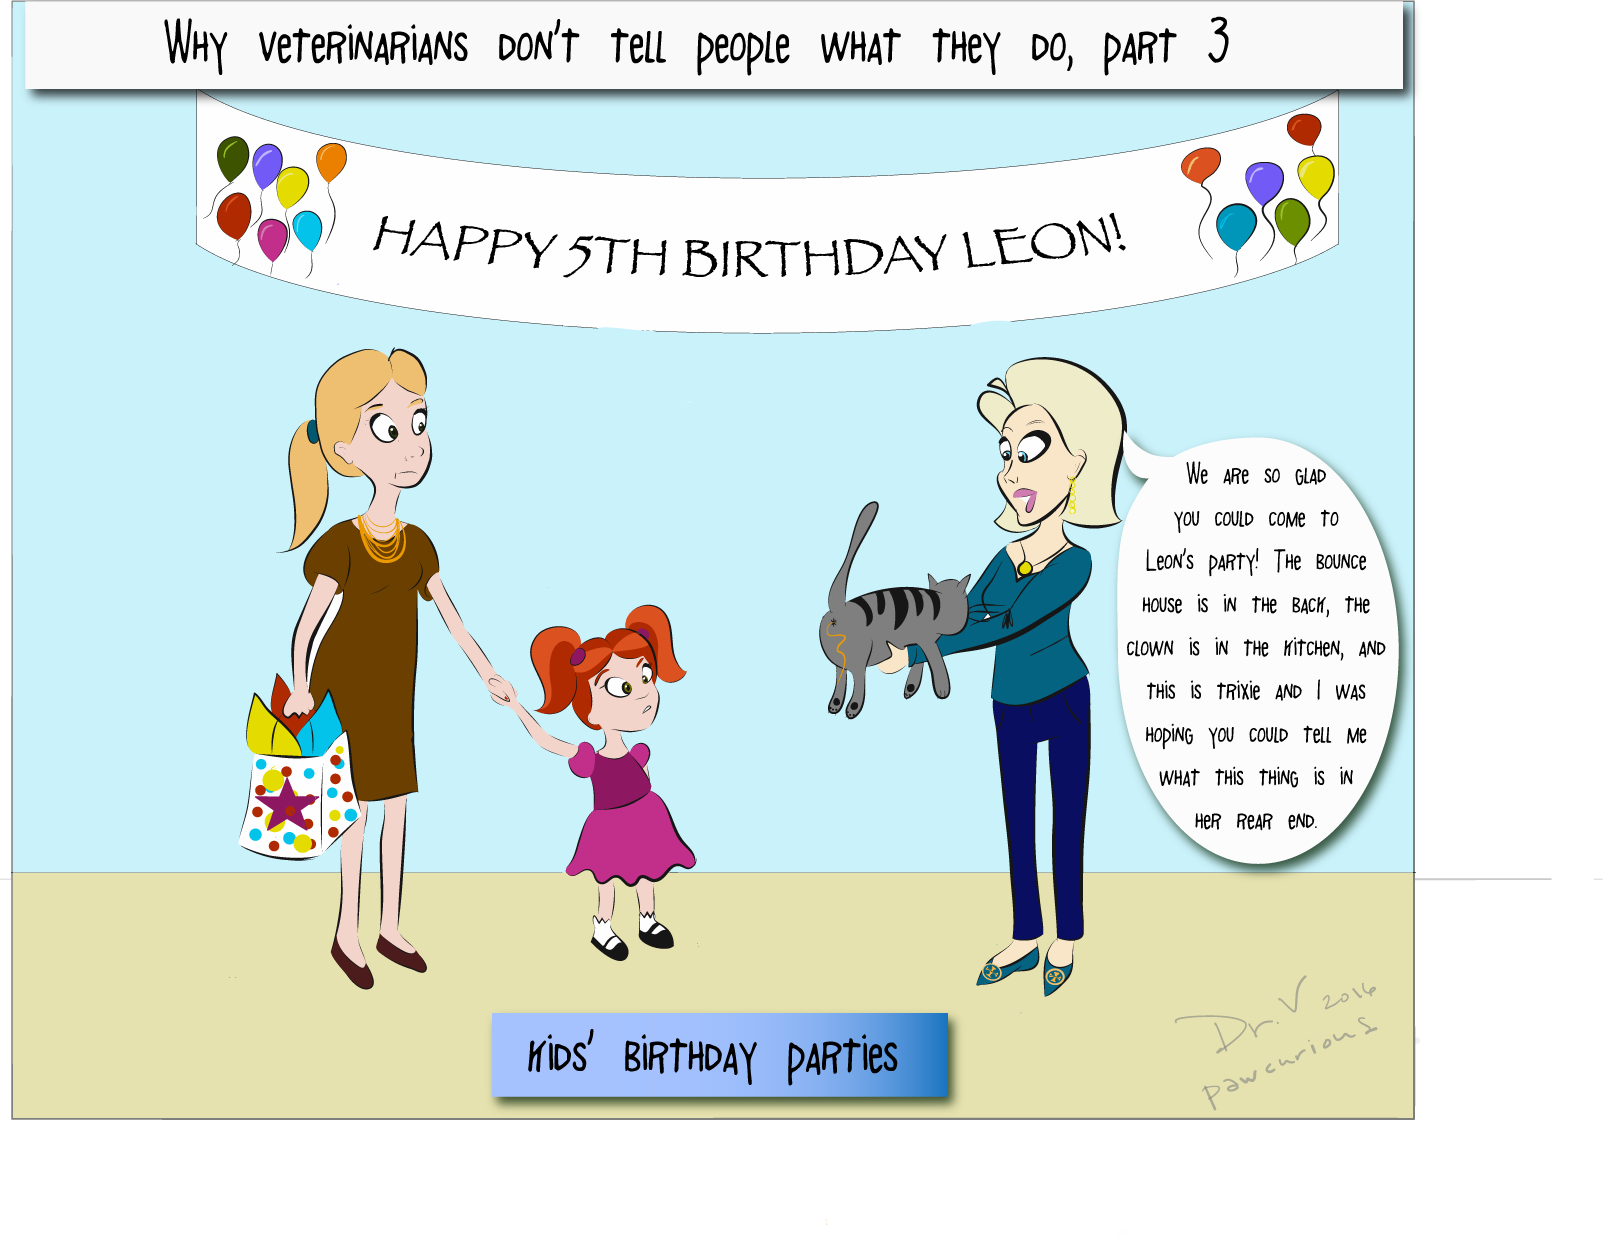 Veterinarian clipart kid. Why i tell people